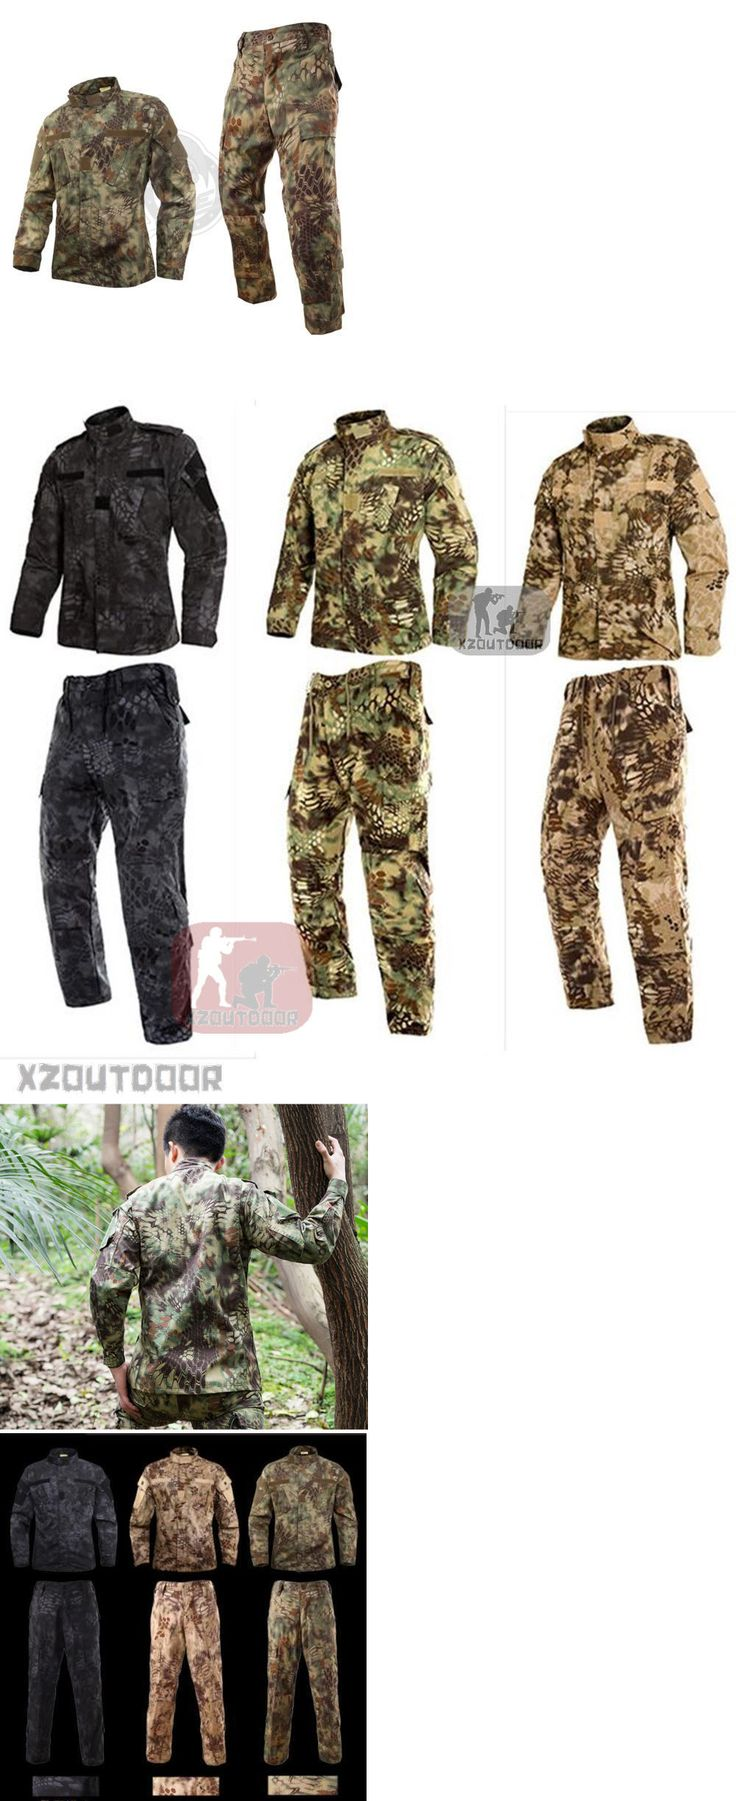 Tactical Clothing 177896: 2017 Mandrake Military Bdu Tactical Uniform Shirt Pants Kryptek Hunting Airsoft -> BUY IT NOW ONLY: $30 on eBay!